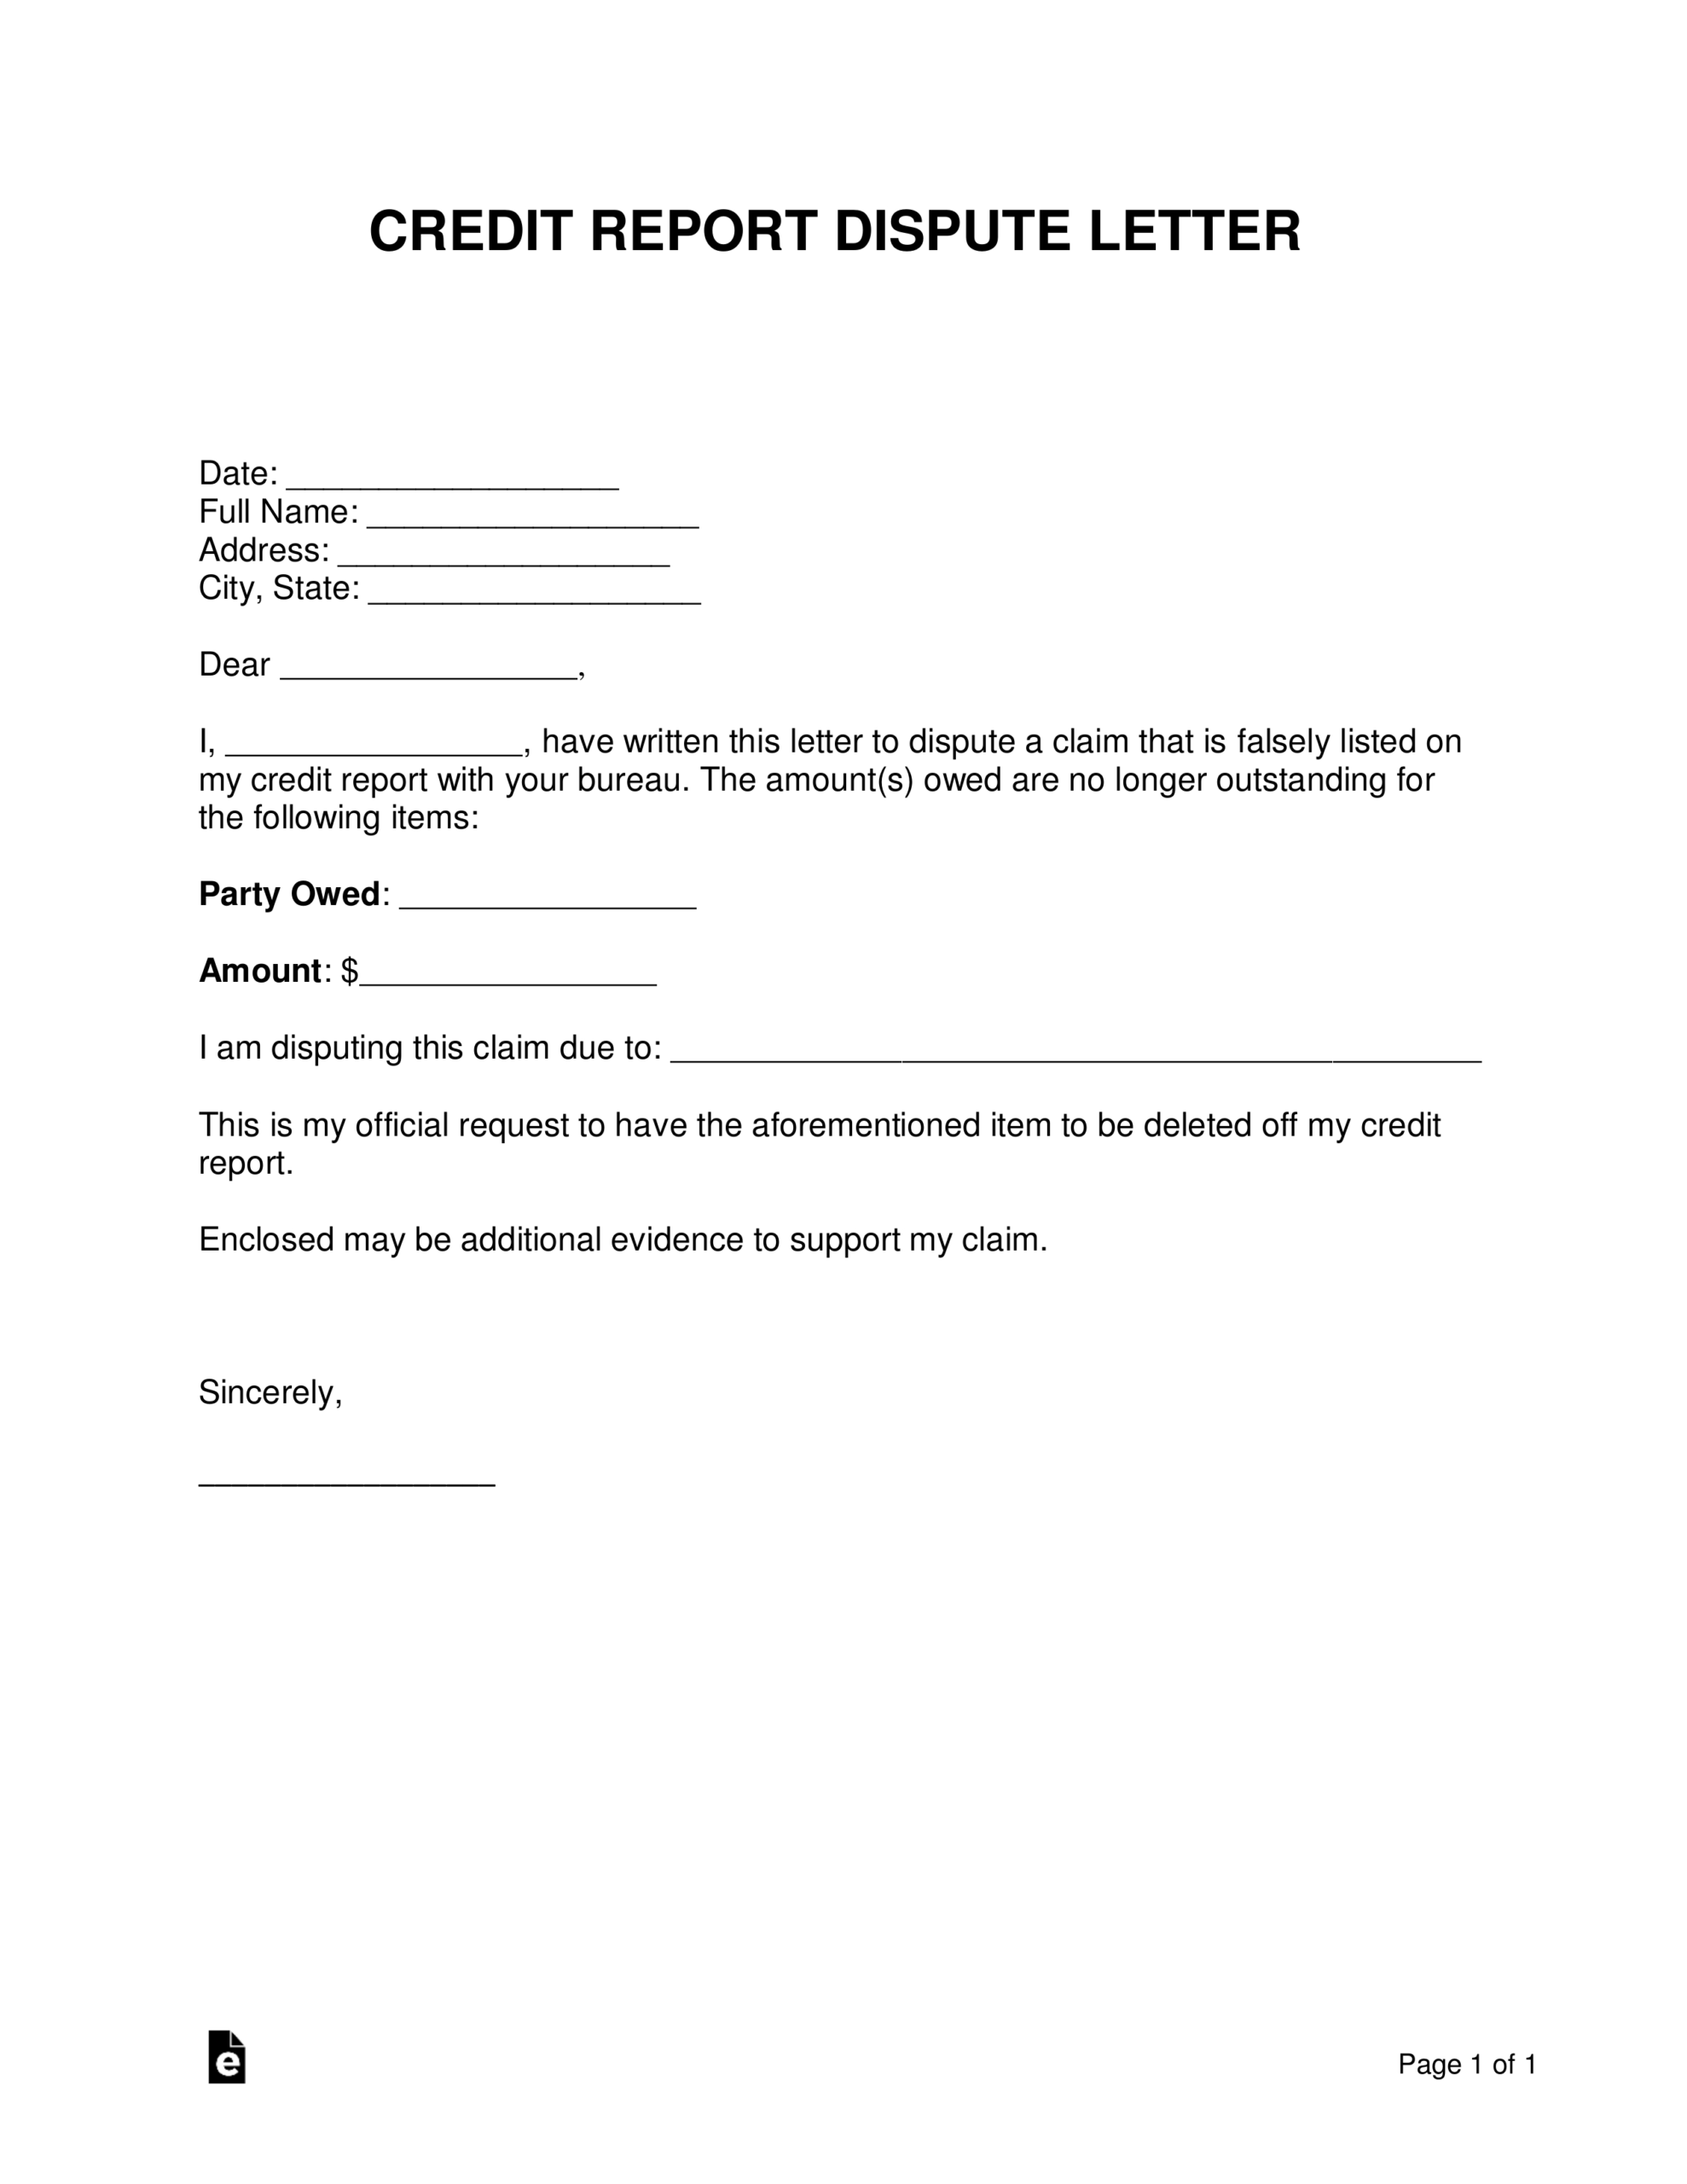 Free Credit Report Dispute Letter Template - Sample - Word Pertaining To Credit Dispute Letter Template